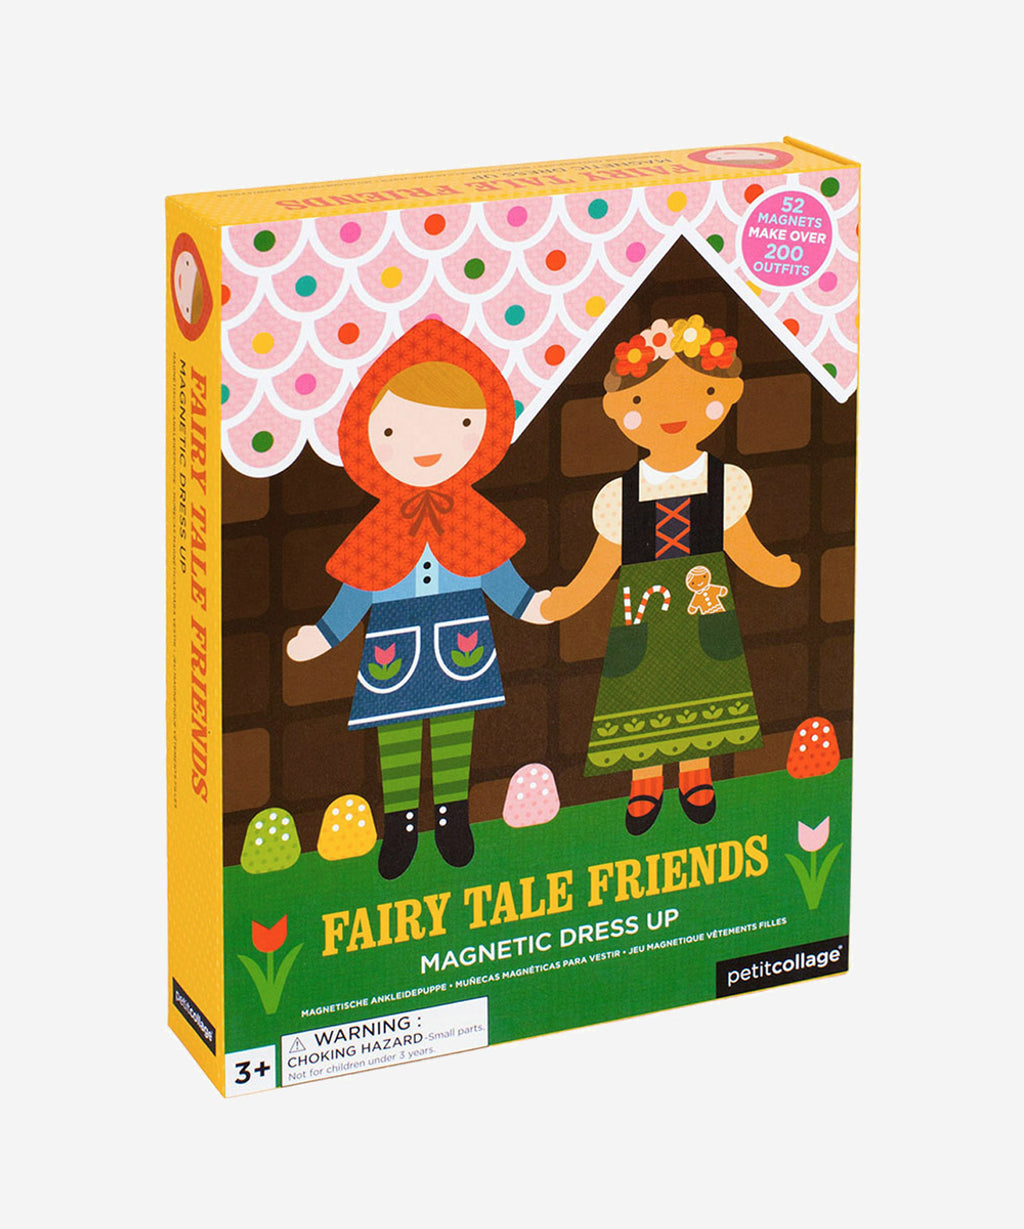 Petitcollage - Magnetic Dress Up - Fairytale Friends